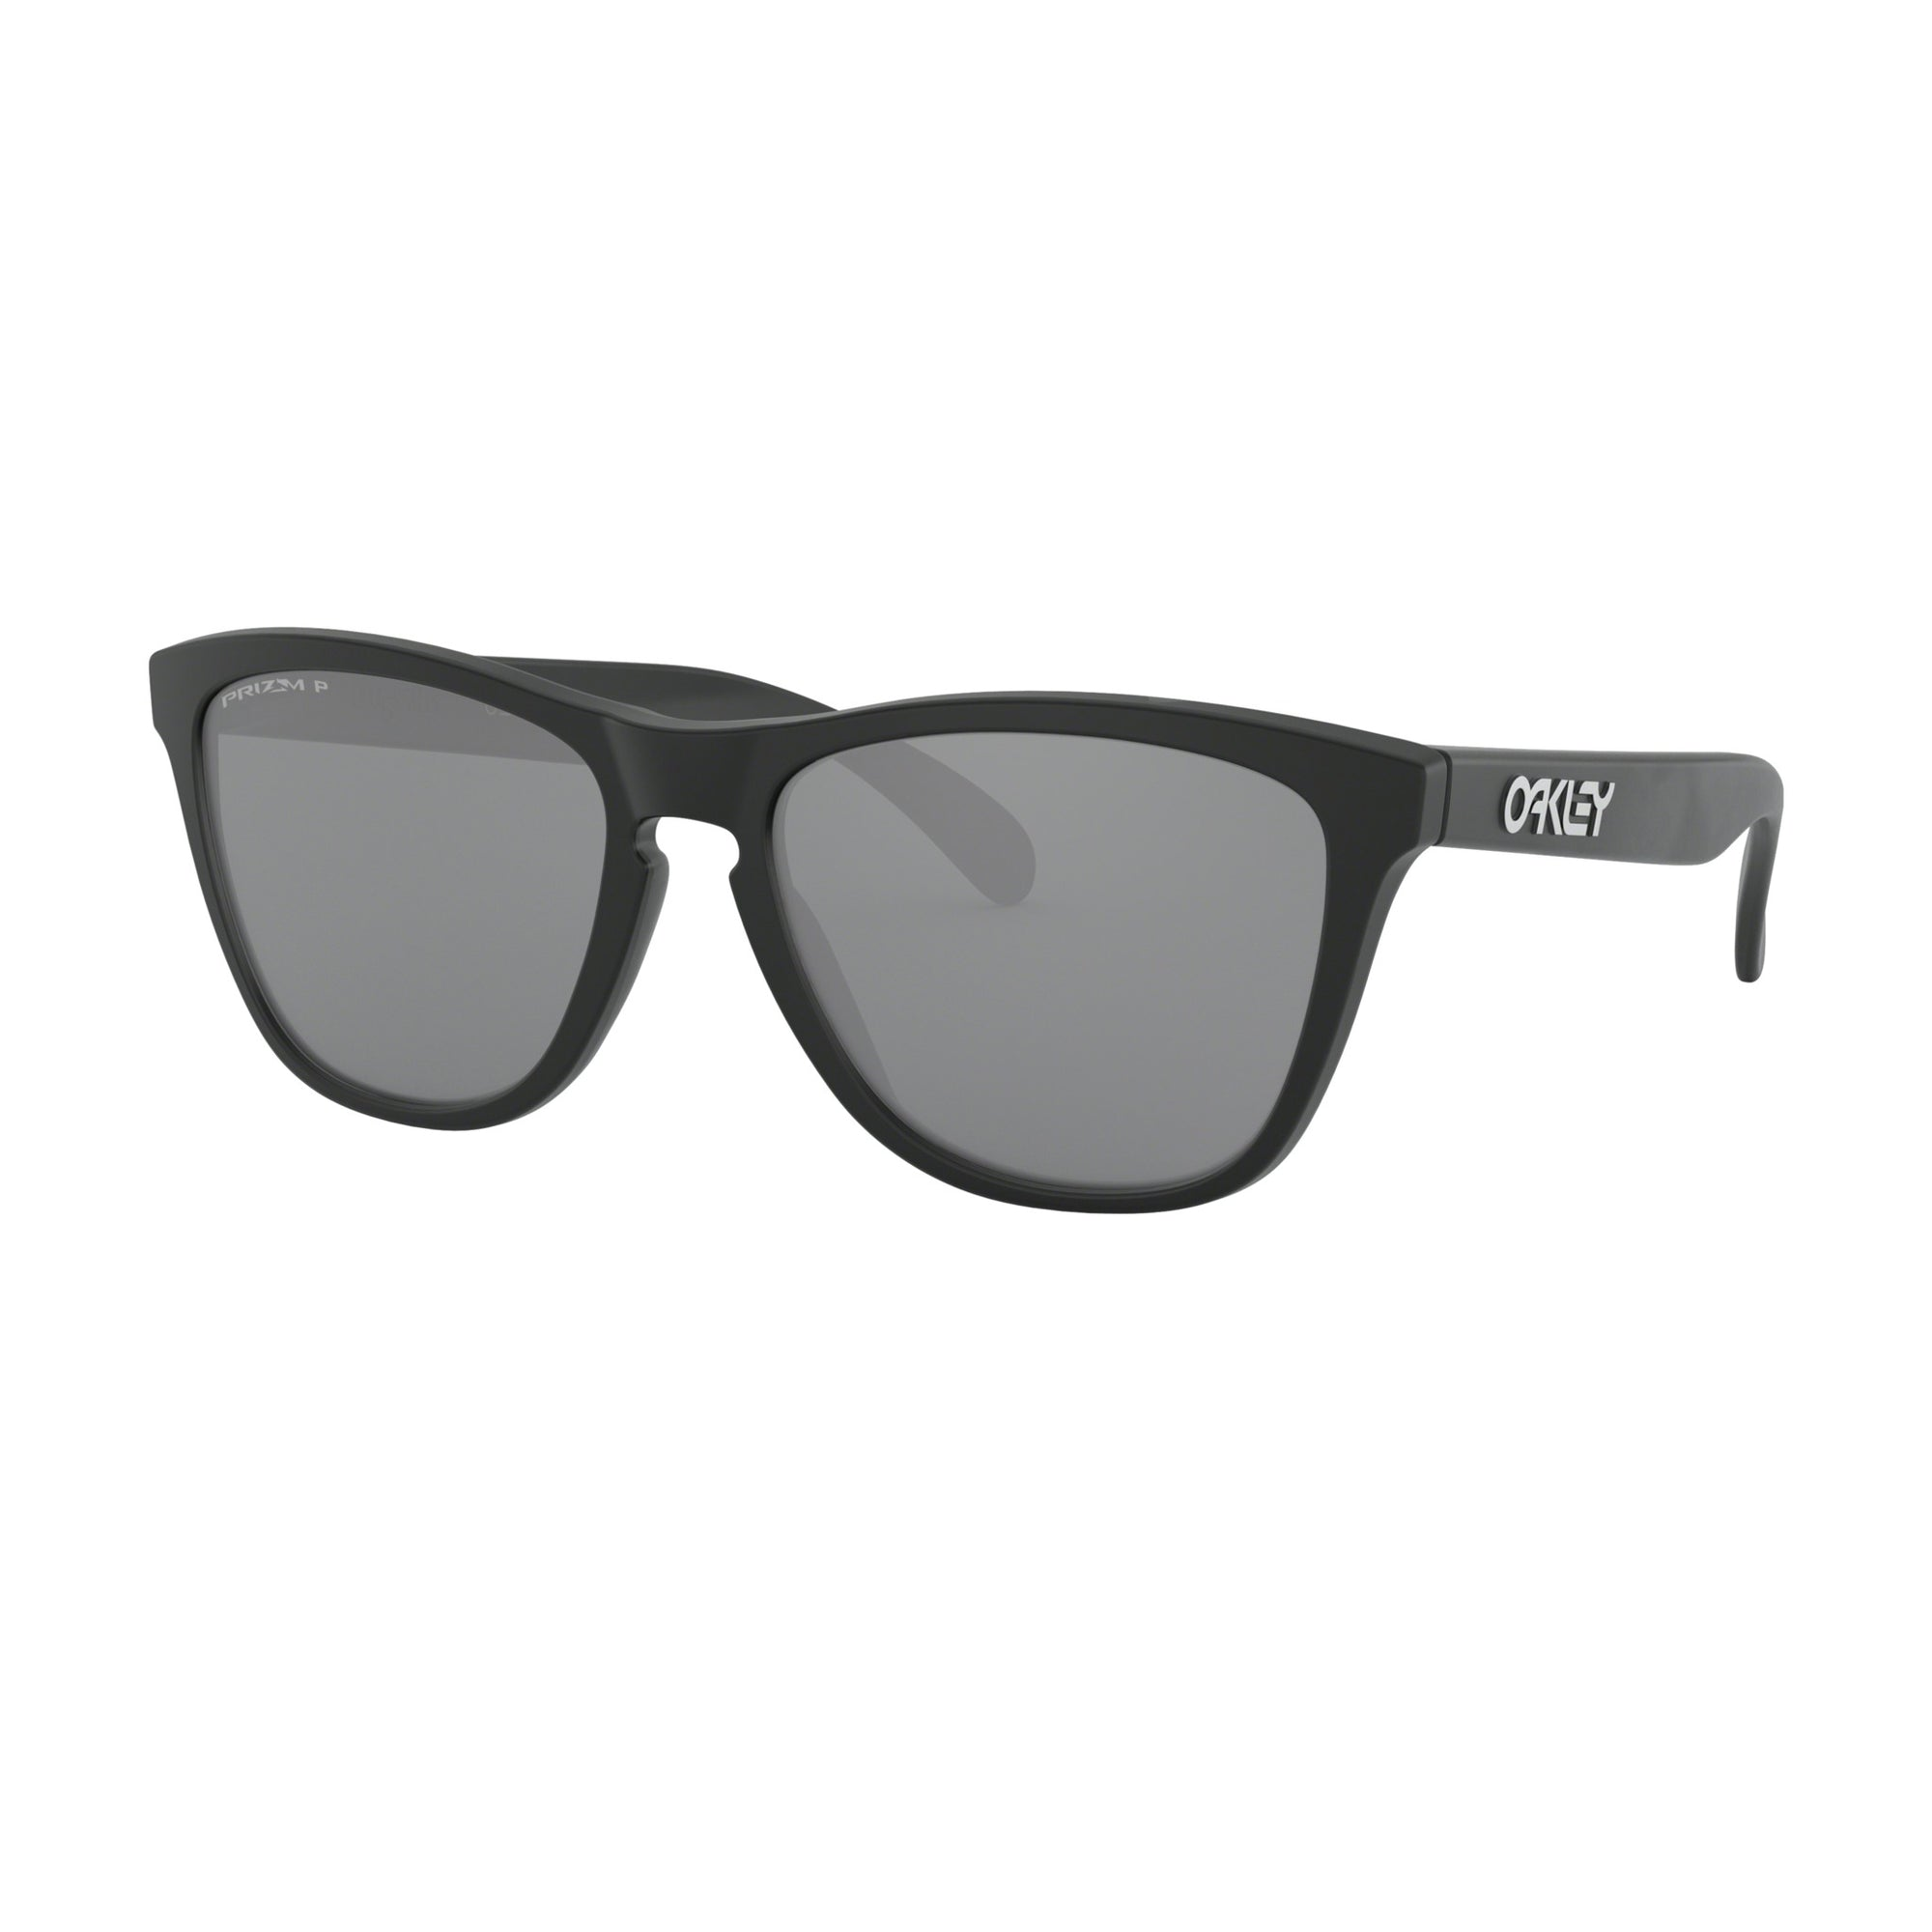 Oakley Frogskins Men's Sunglasses - Polarized - Matte Black/Prizm Black